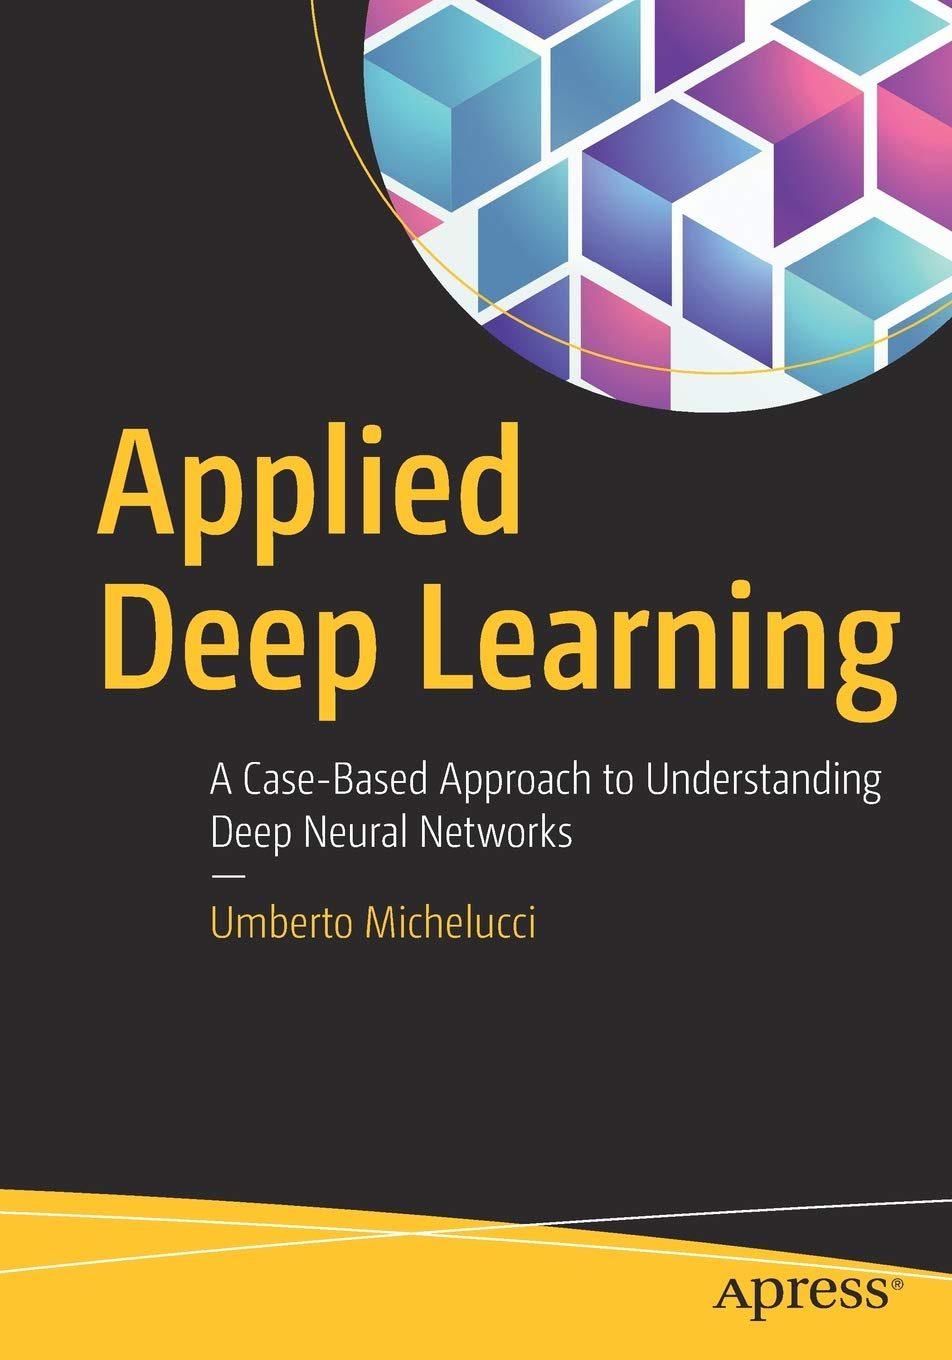 Applied Deep Learning: A Case-Based Approach to